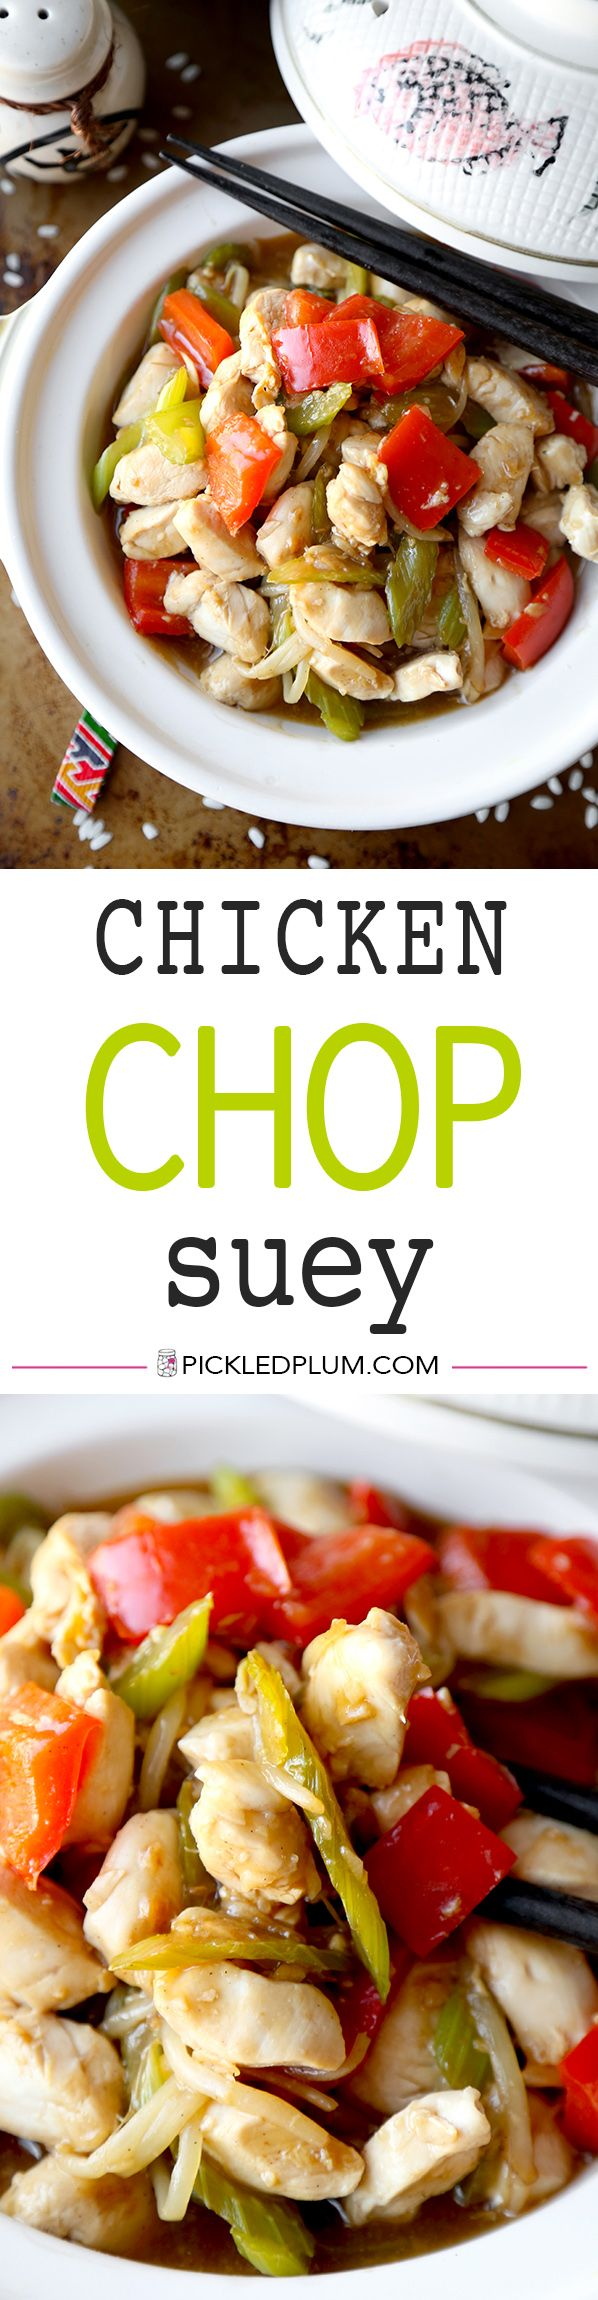 Chicken Chop Suey - Easy chicken chop suey cooked in a delicate savory sauce. This simple recipe is great if you are busy but still want homemade Chinese! Ready in less than 20 minutes. Easy, Healthy, Chinese, Recipe   pickledplum.com